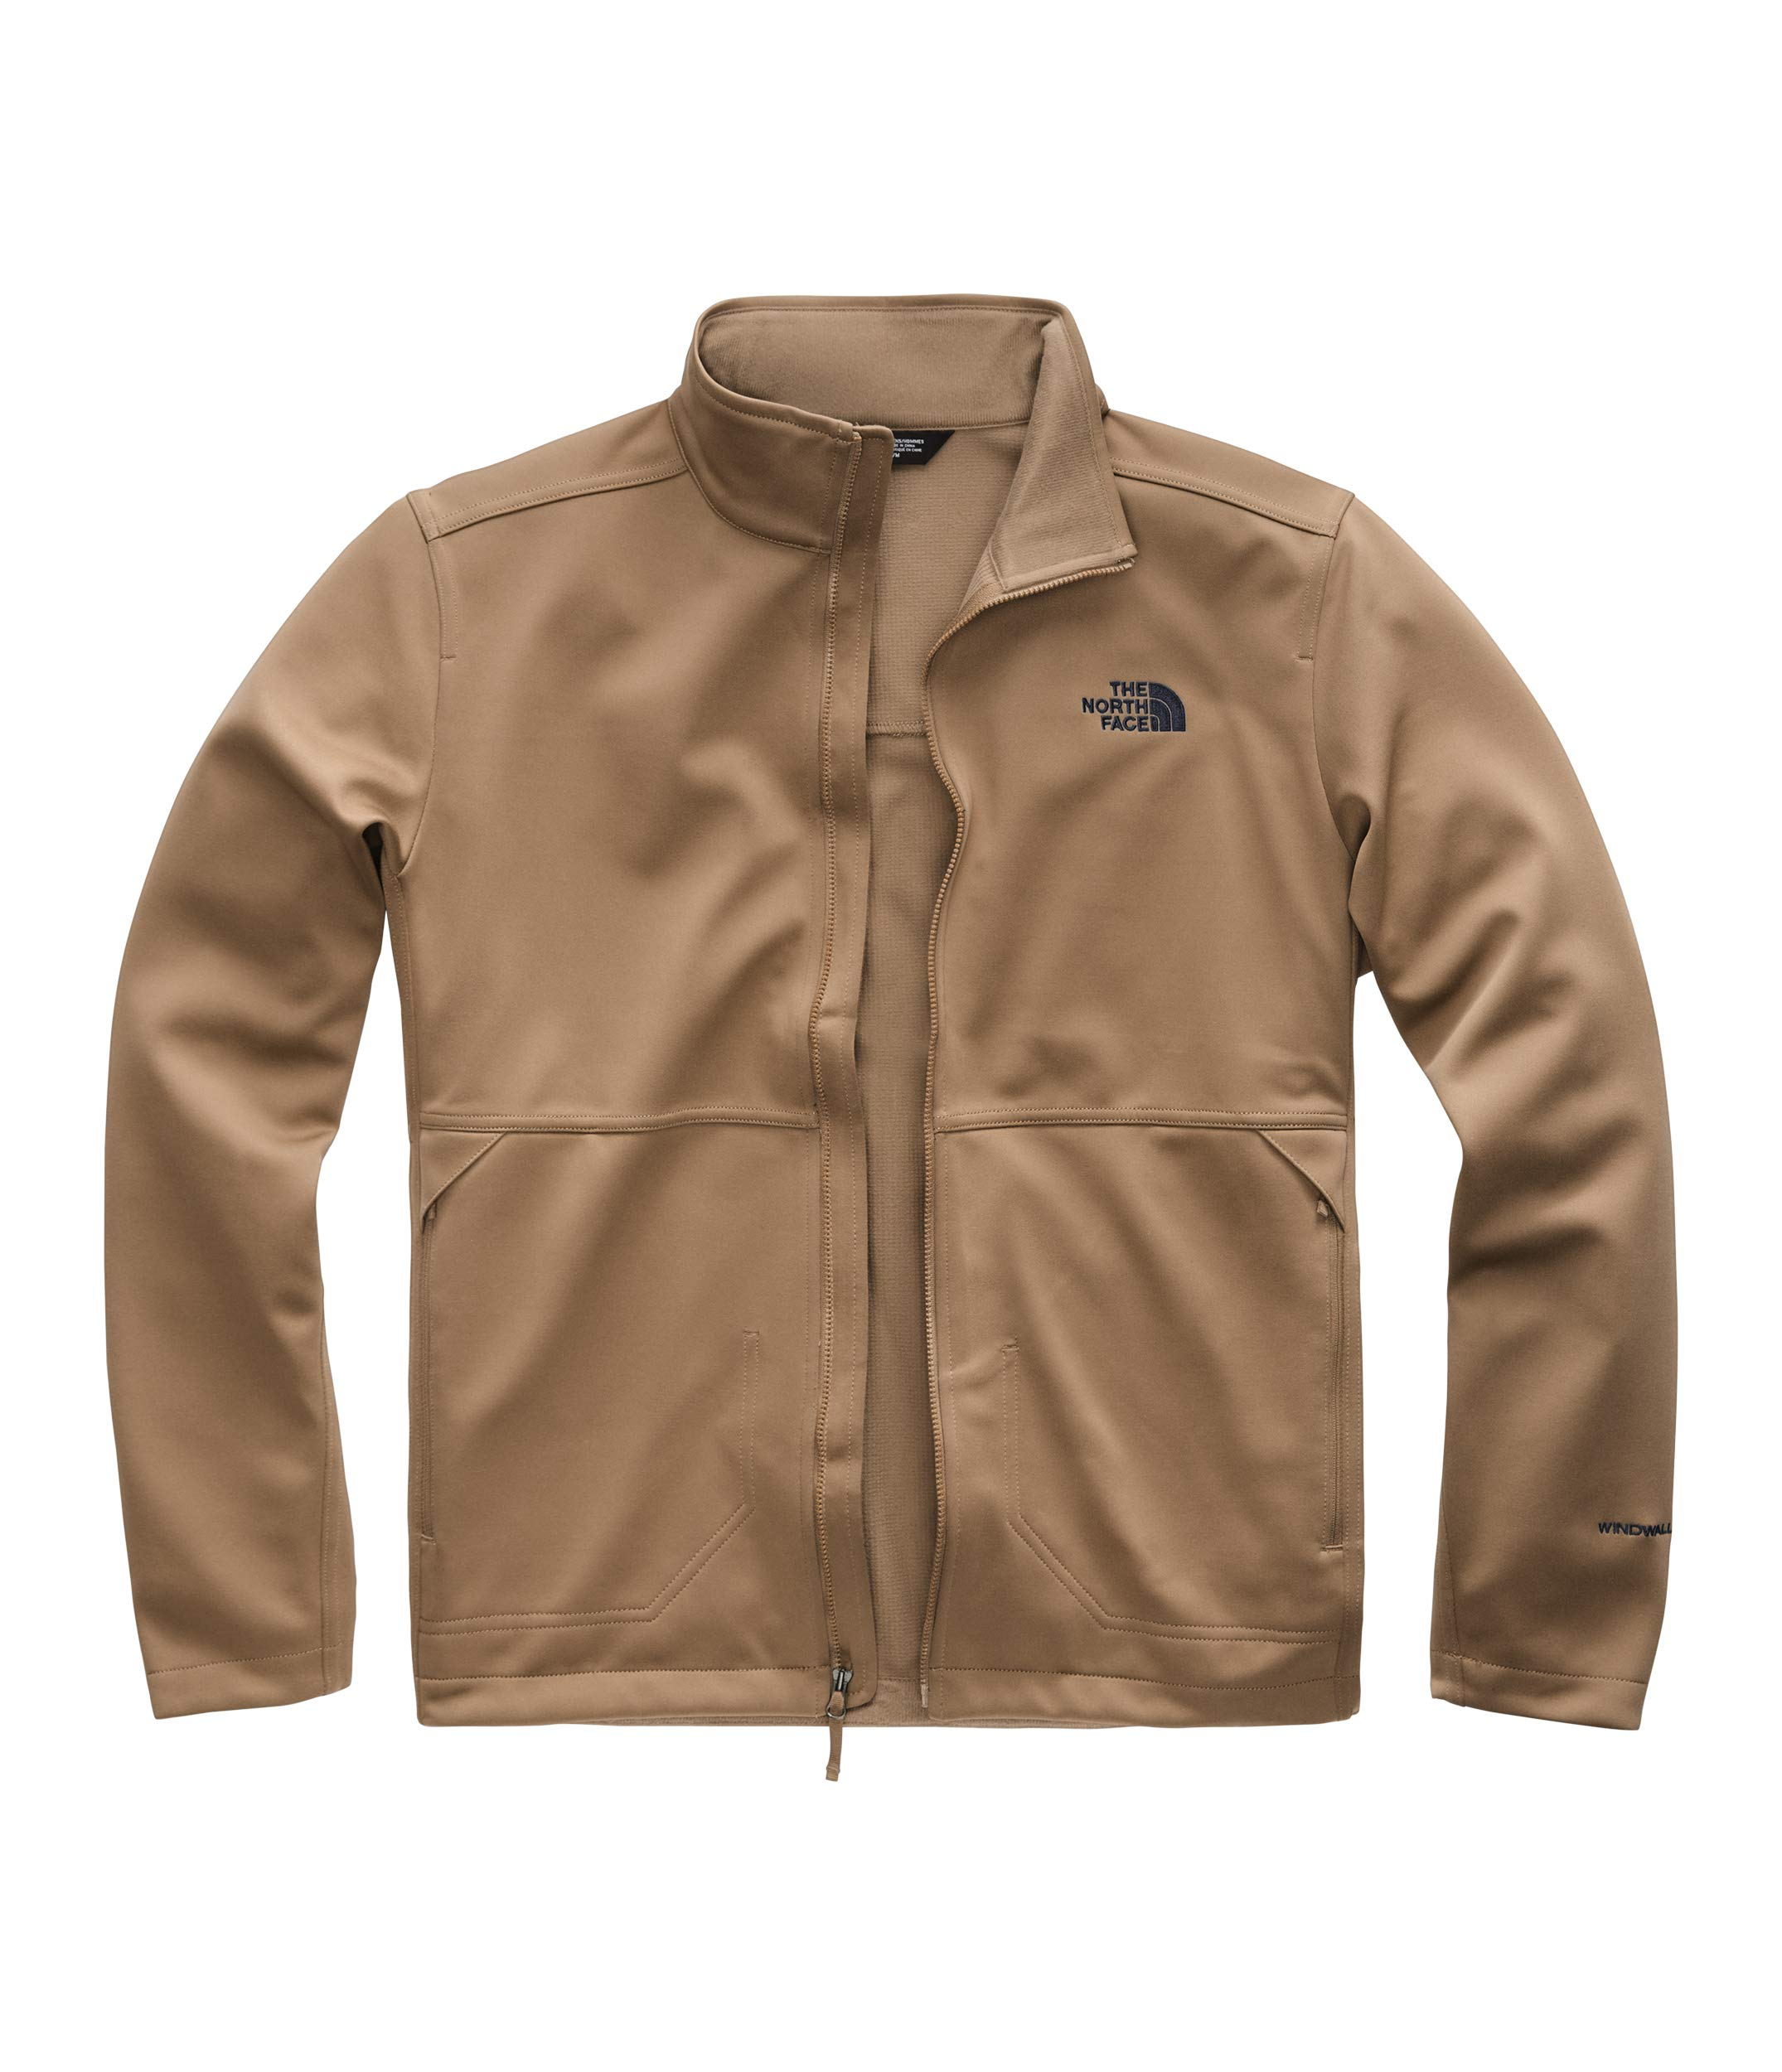 The North Face Men's Apex Canyonwall Jacket, Cargo Khaki, Medium by The North Face